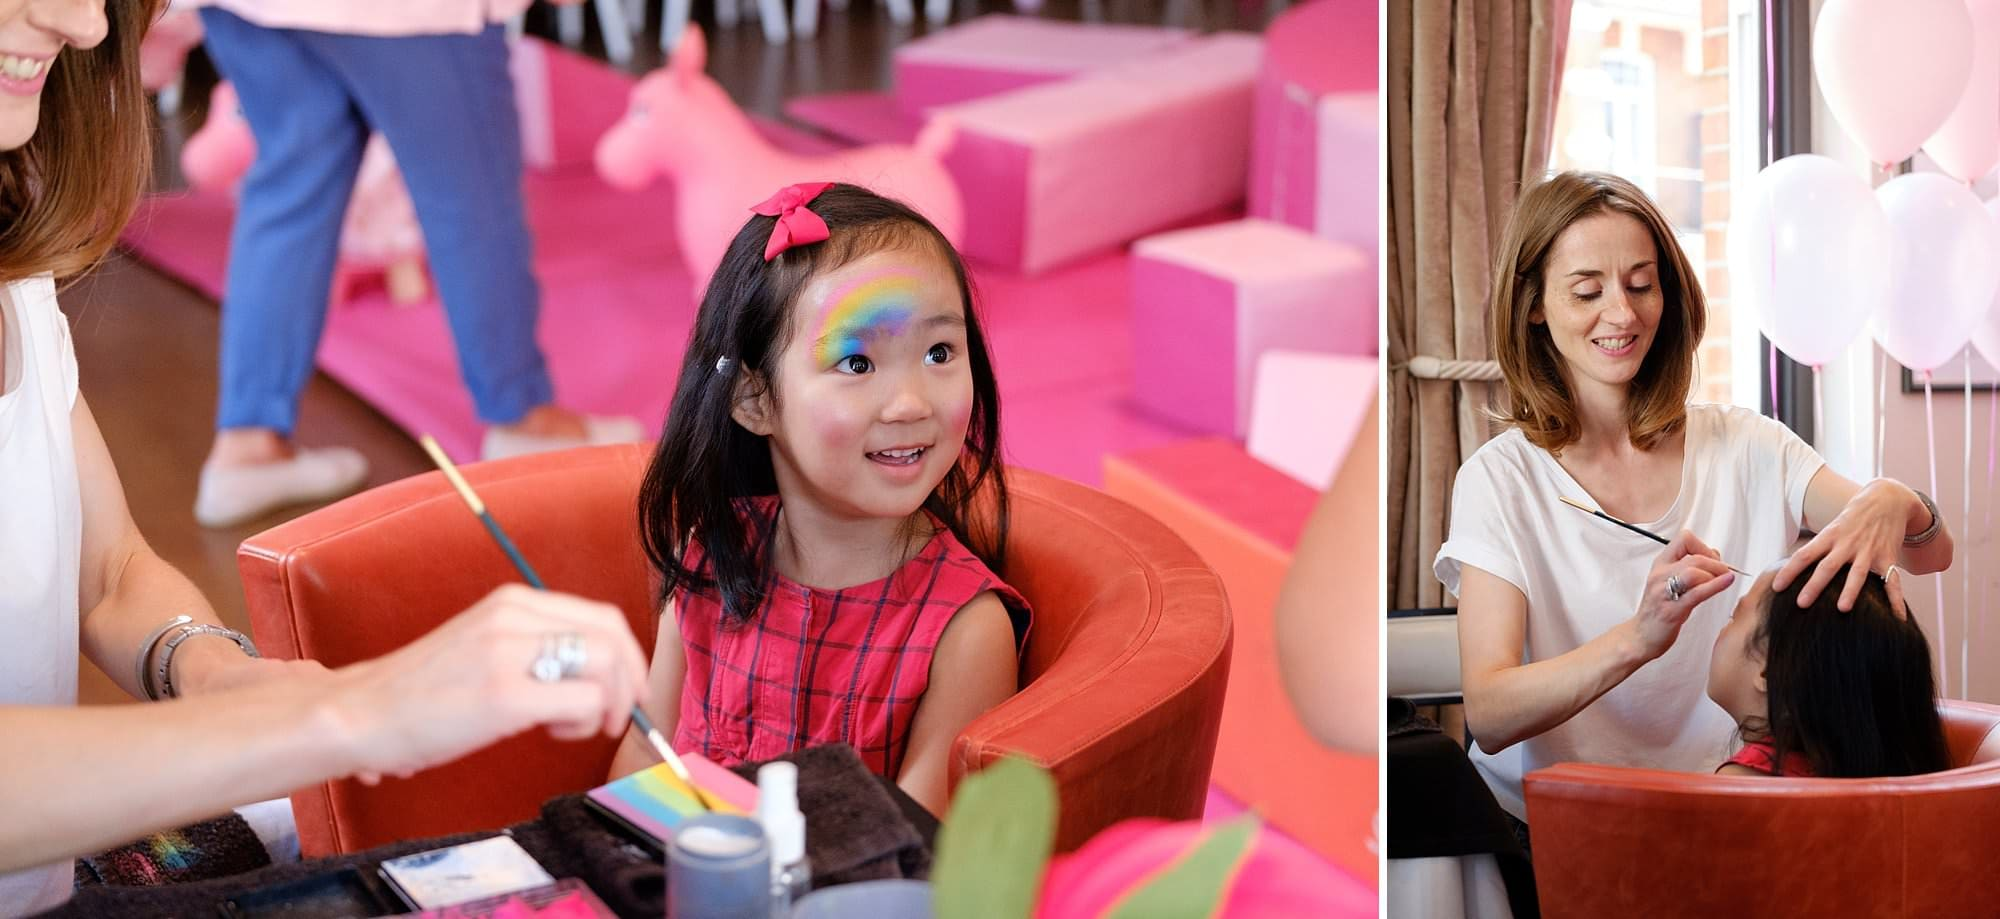 childrens party photographer chelsea beaufort house 009 - A 3rd Birthday Party in Beaufort House Chelsea